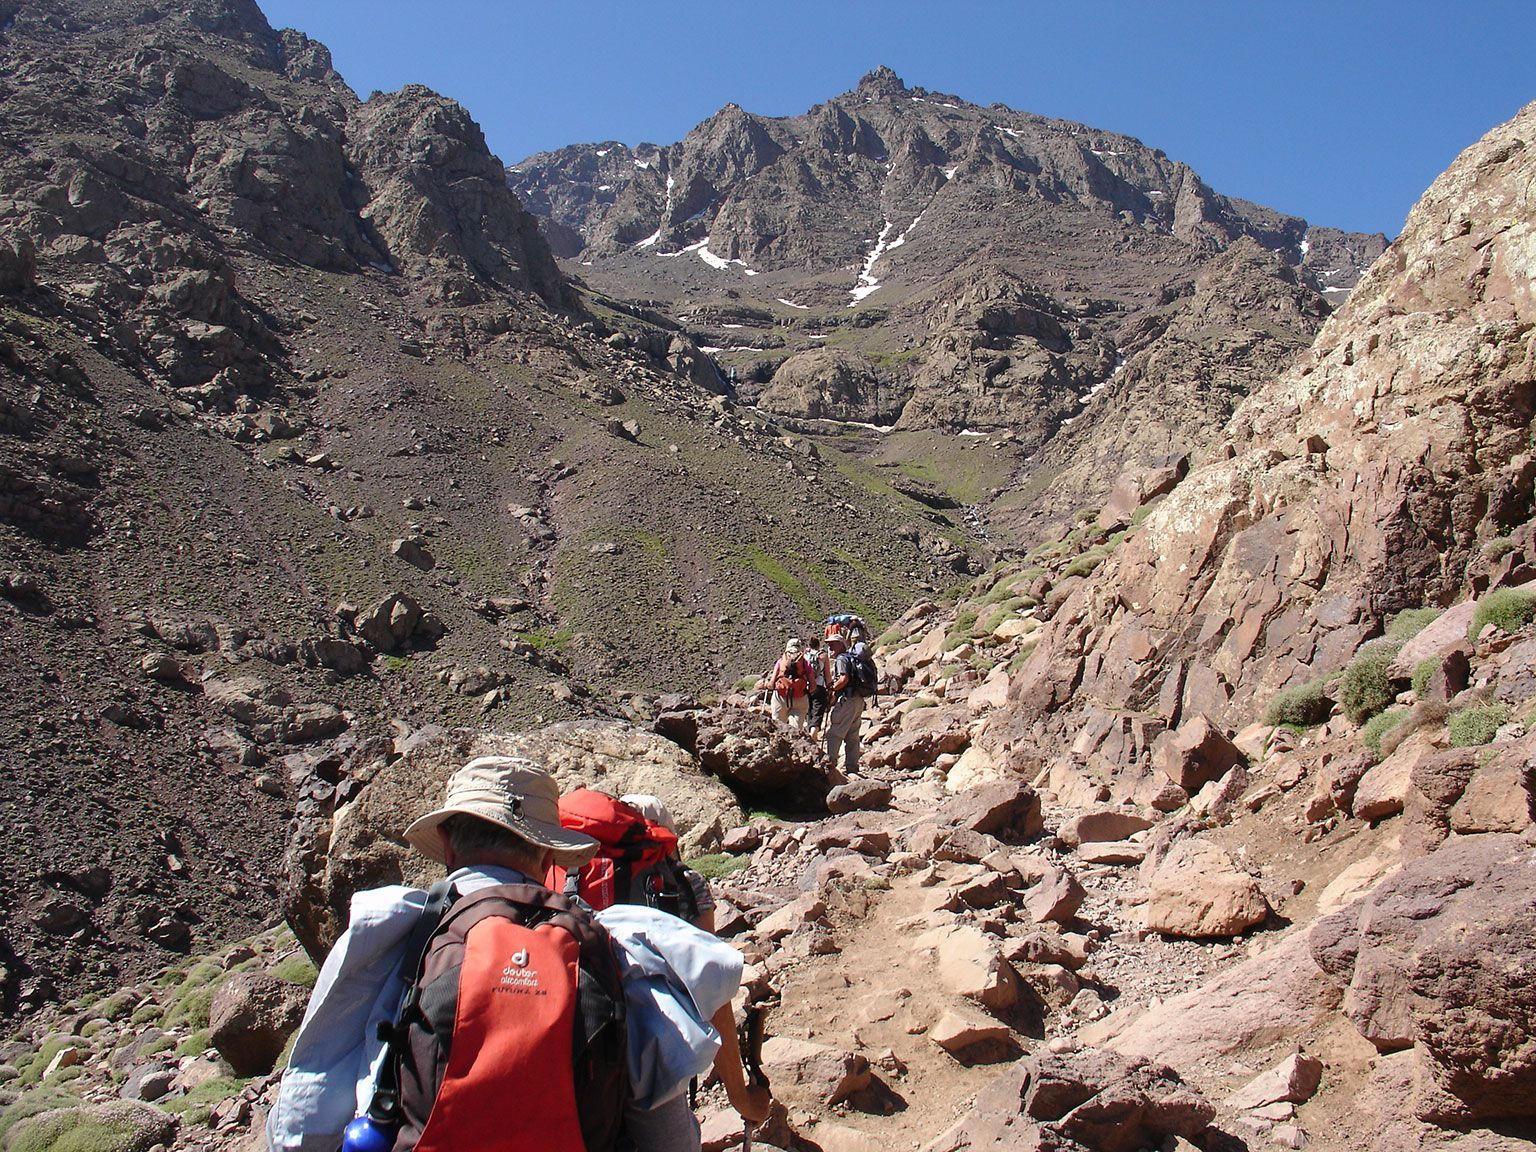 Ascension du Toubkal